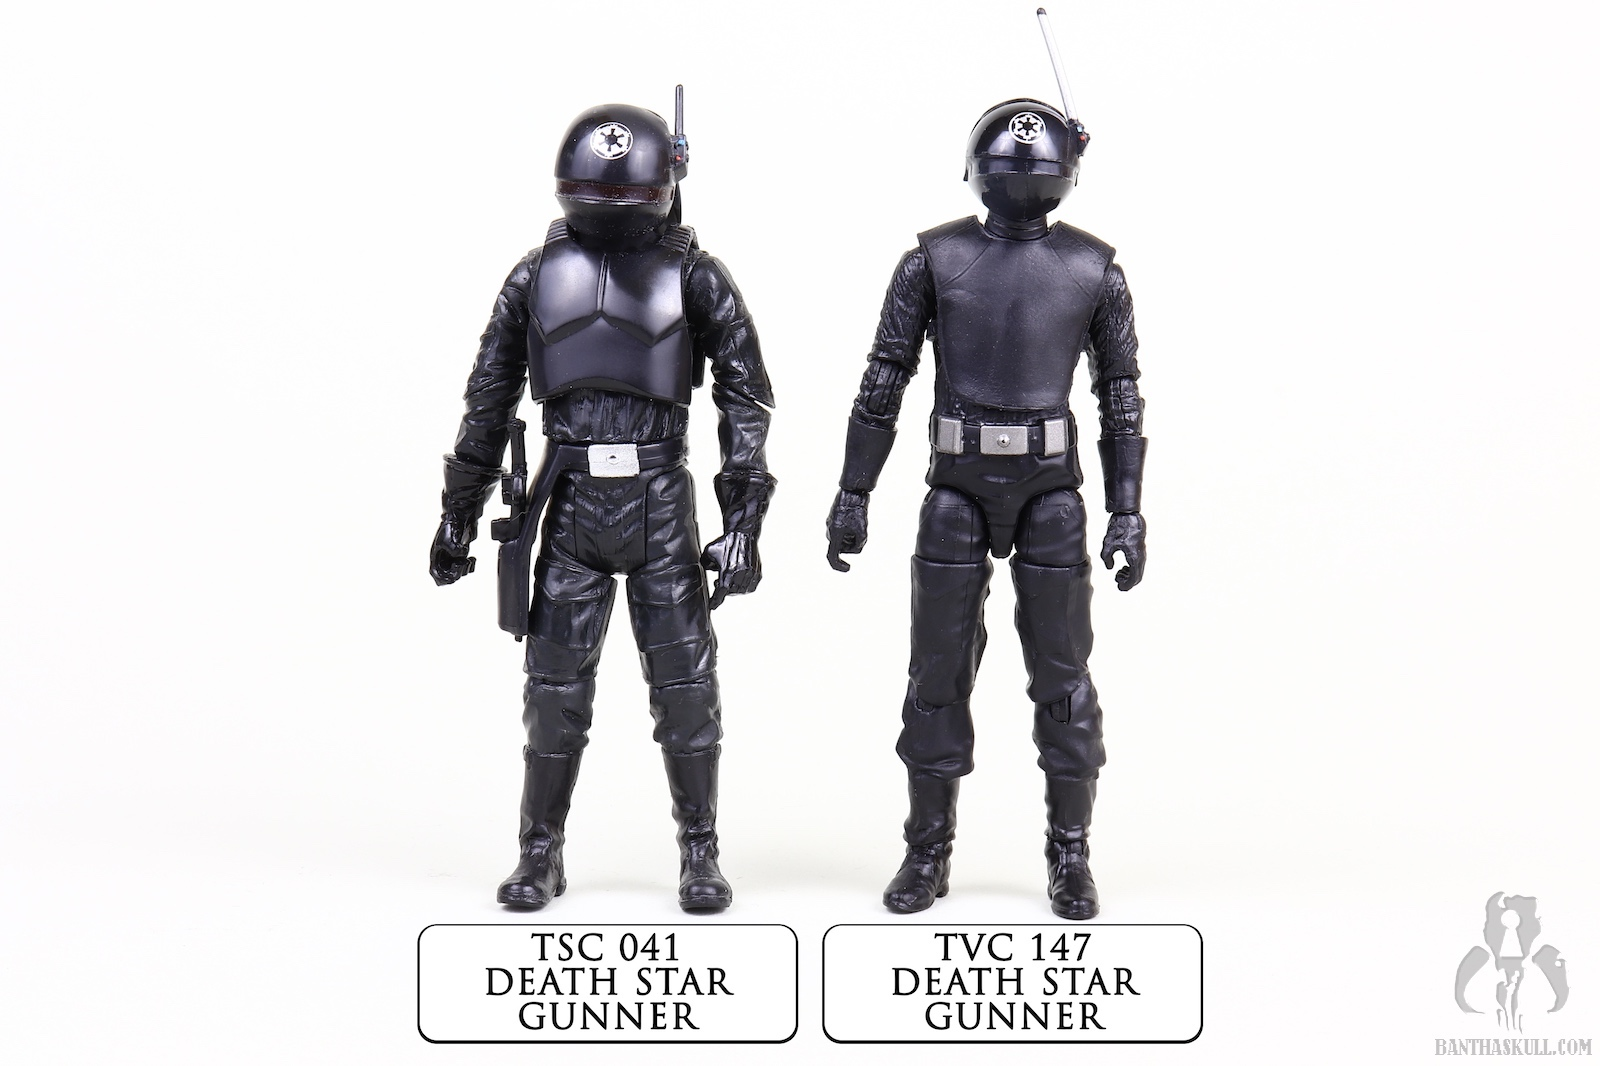 VC147 Death Star Gunner Rogue One Star Wars Vintage Collection Figure